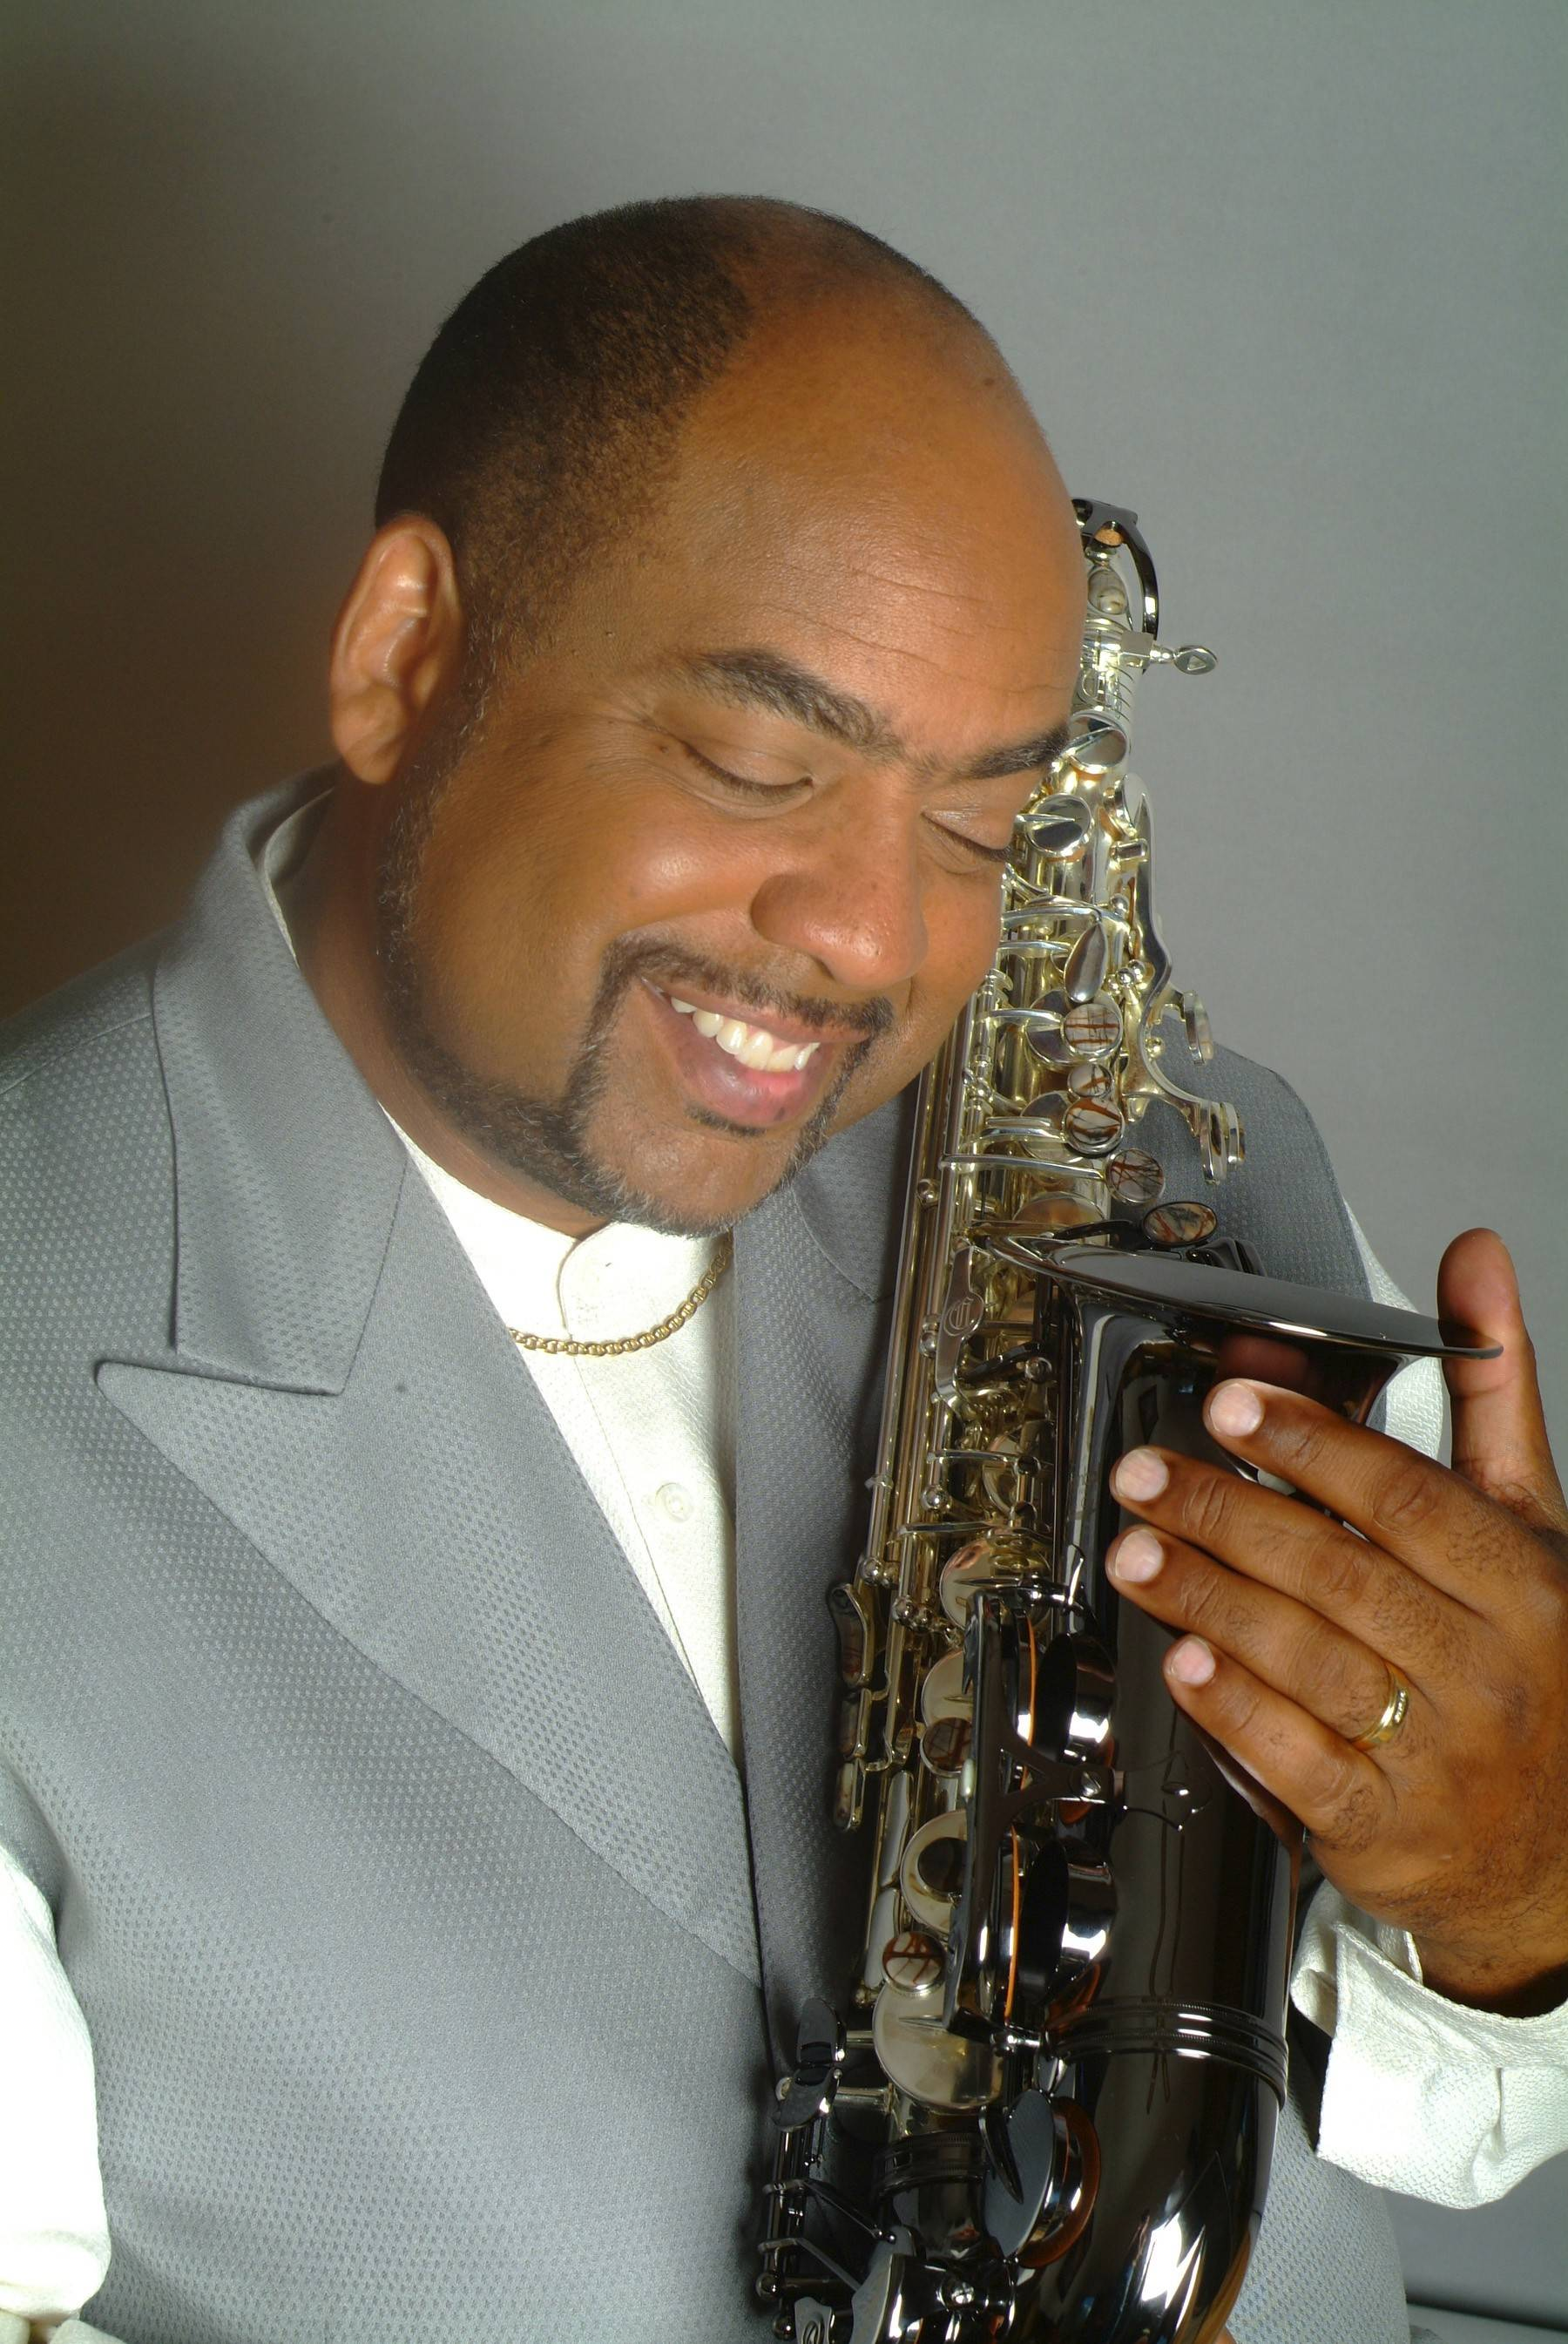 Gerald Albright plays the Montrose Room at the InterContinental O'Hare Hotel in Rosemont at 8 p.m. Saturday, March 22.